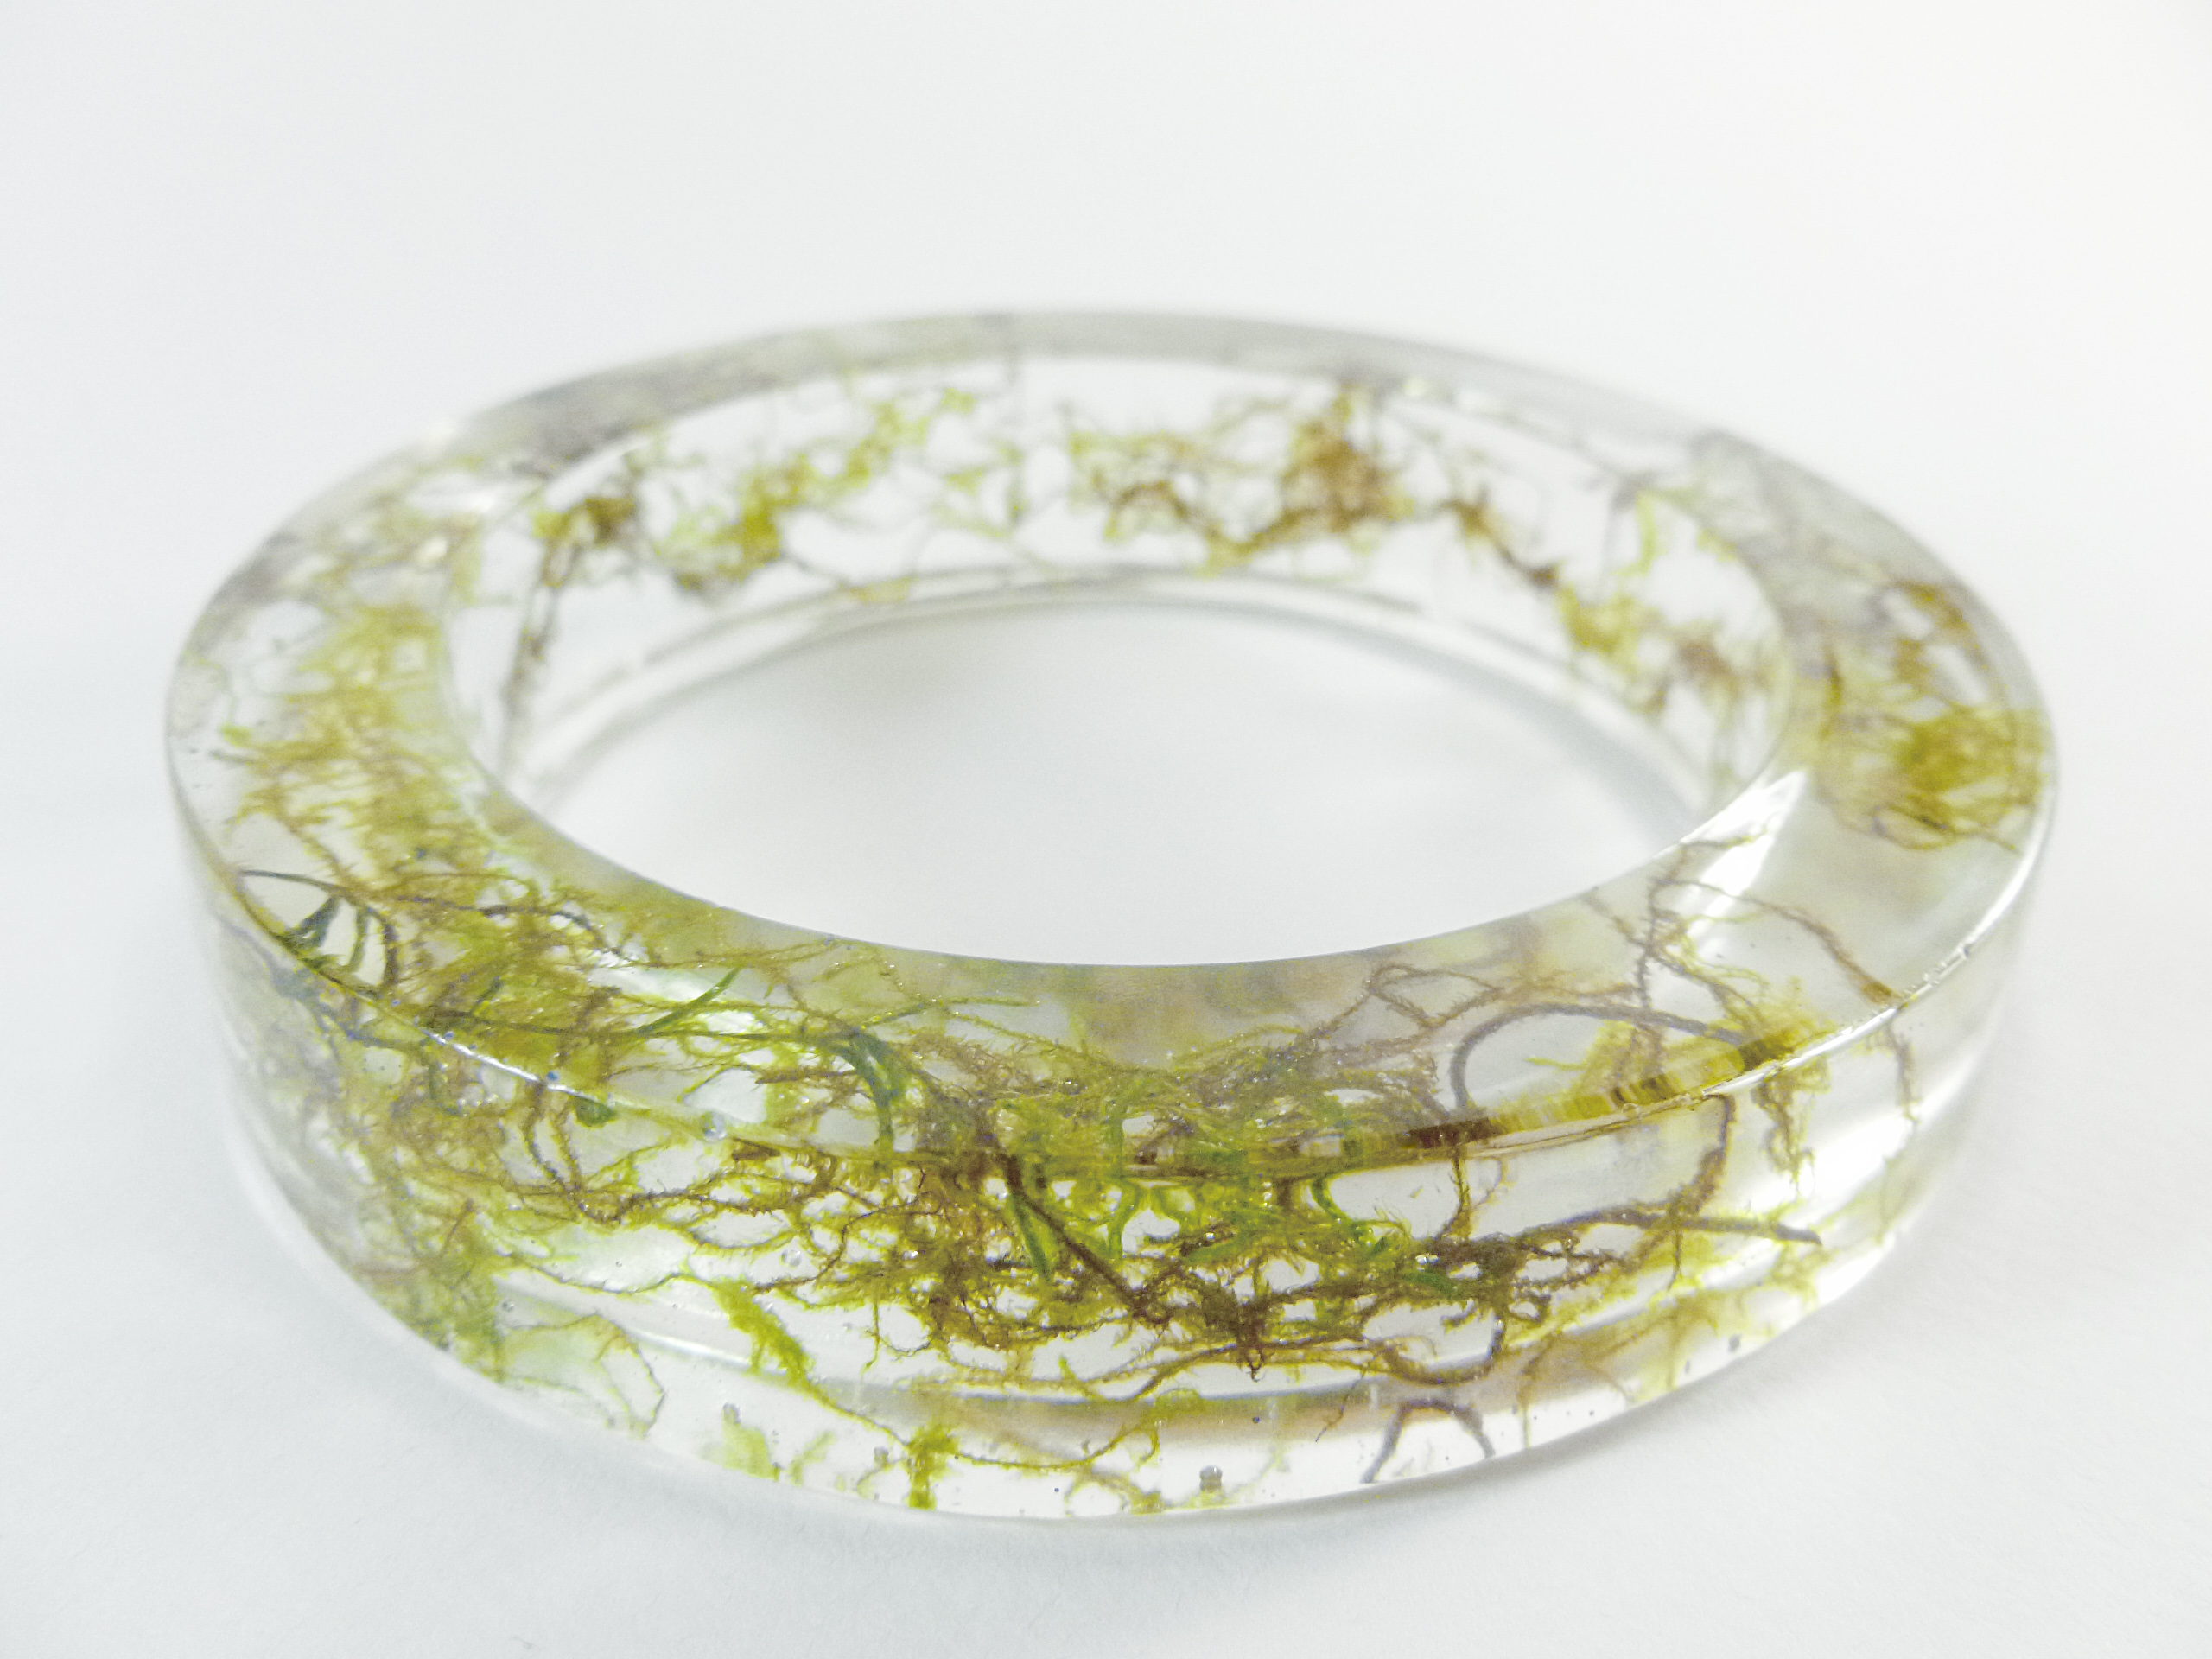 resin_bangle_filled_with_natural_moss_necklaces_4.jpg